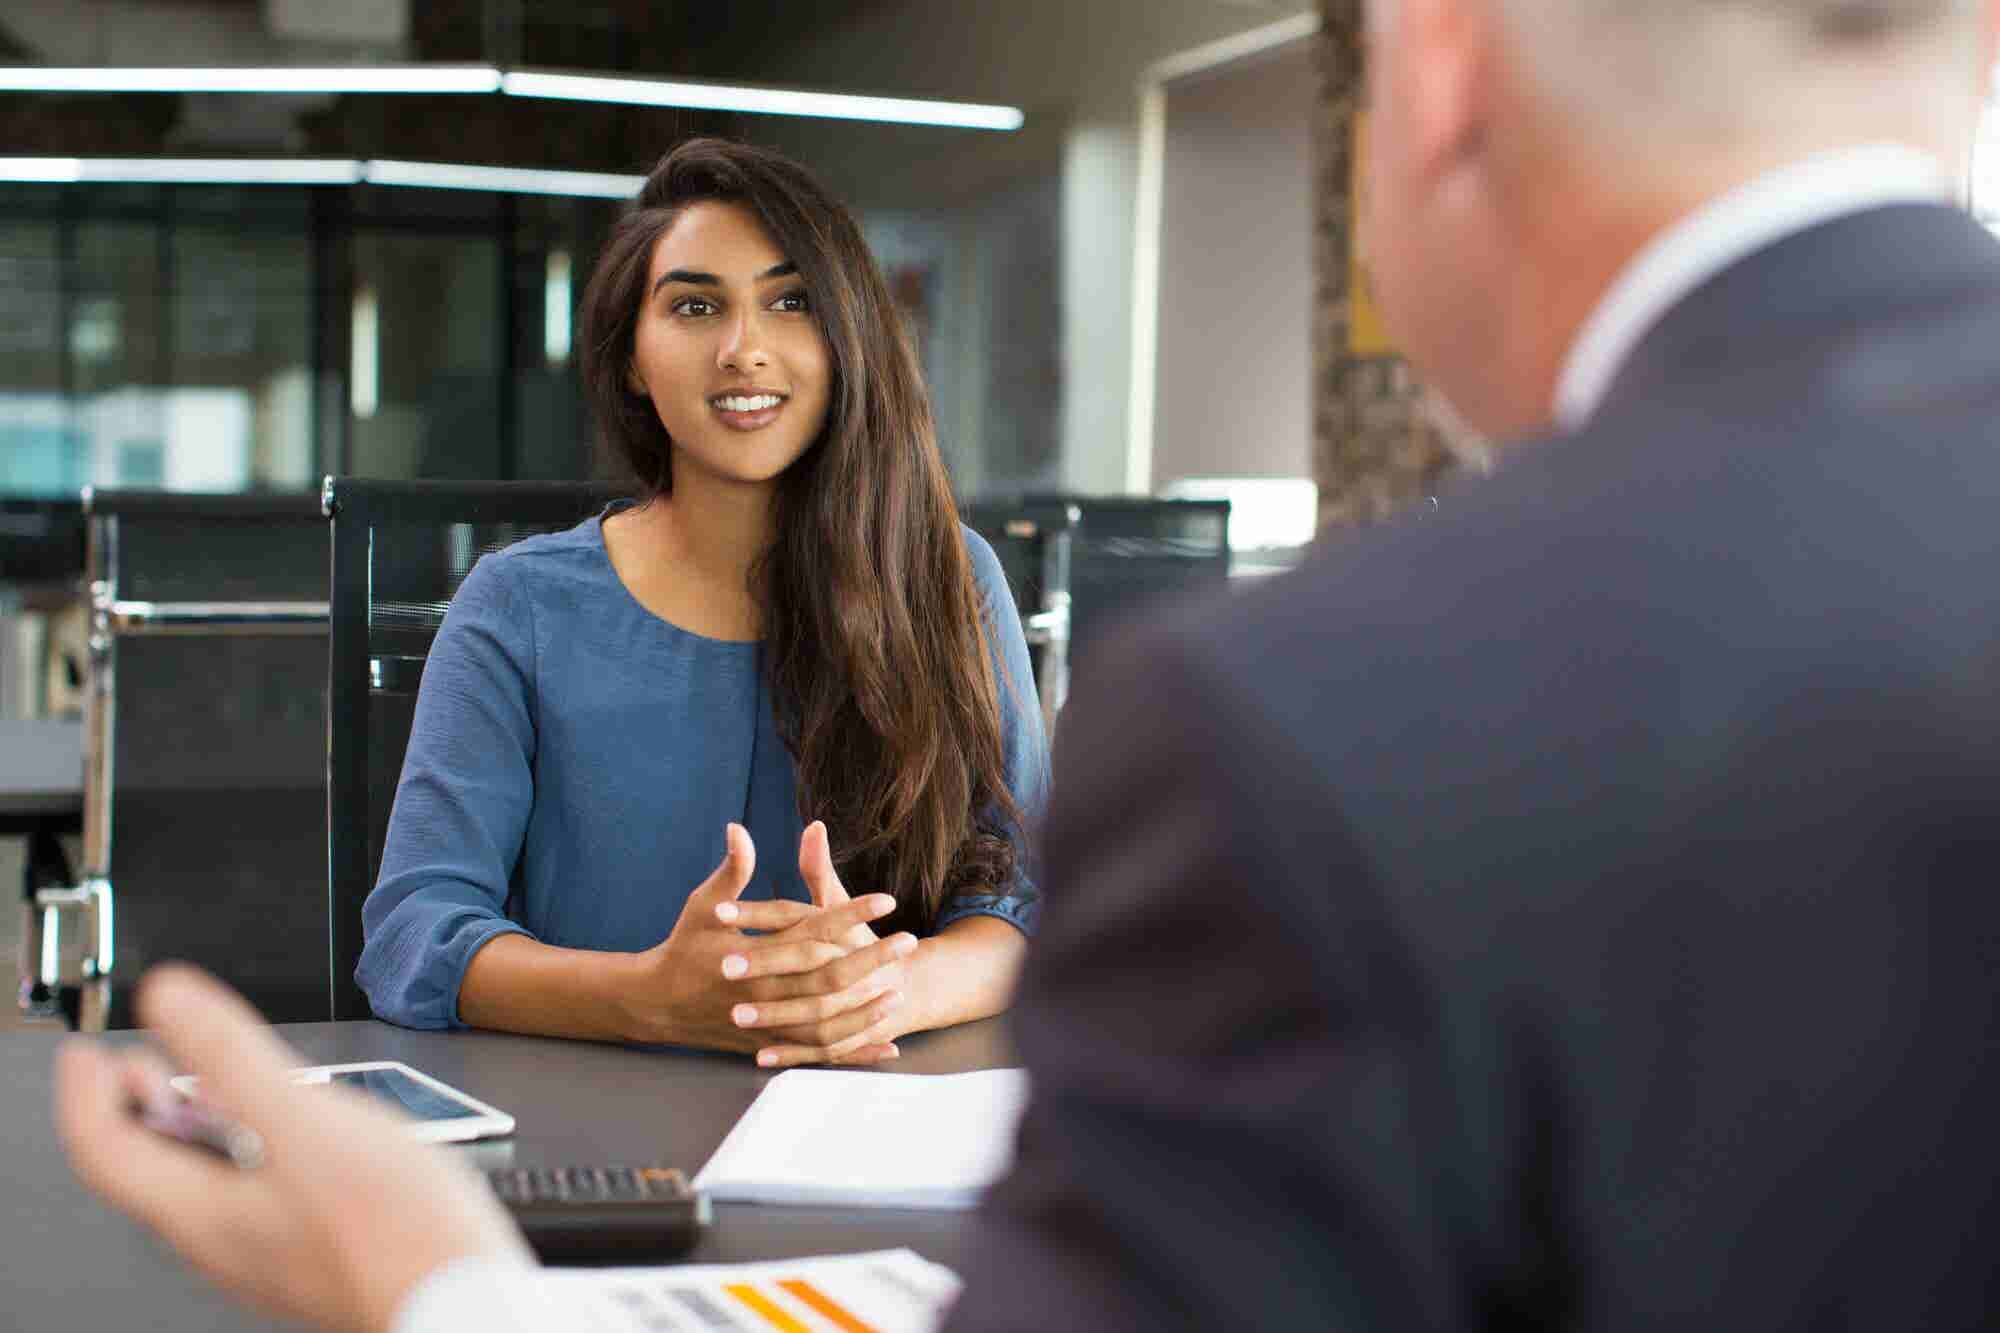 Face-to-Face Meetings With Investors Are Important, But Don't Underestimate the Power of Written Communication